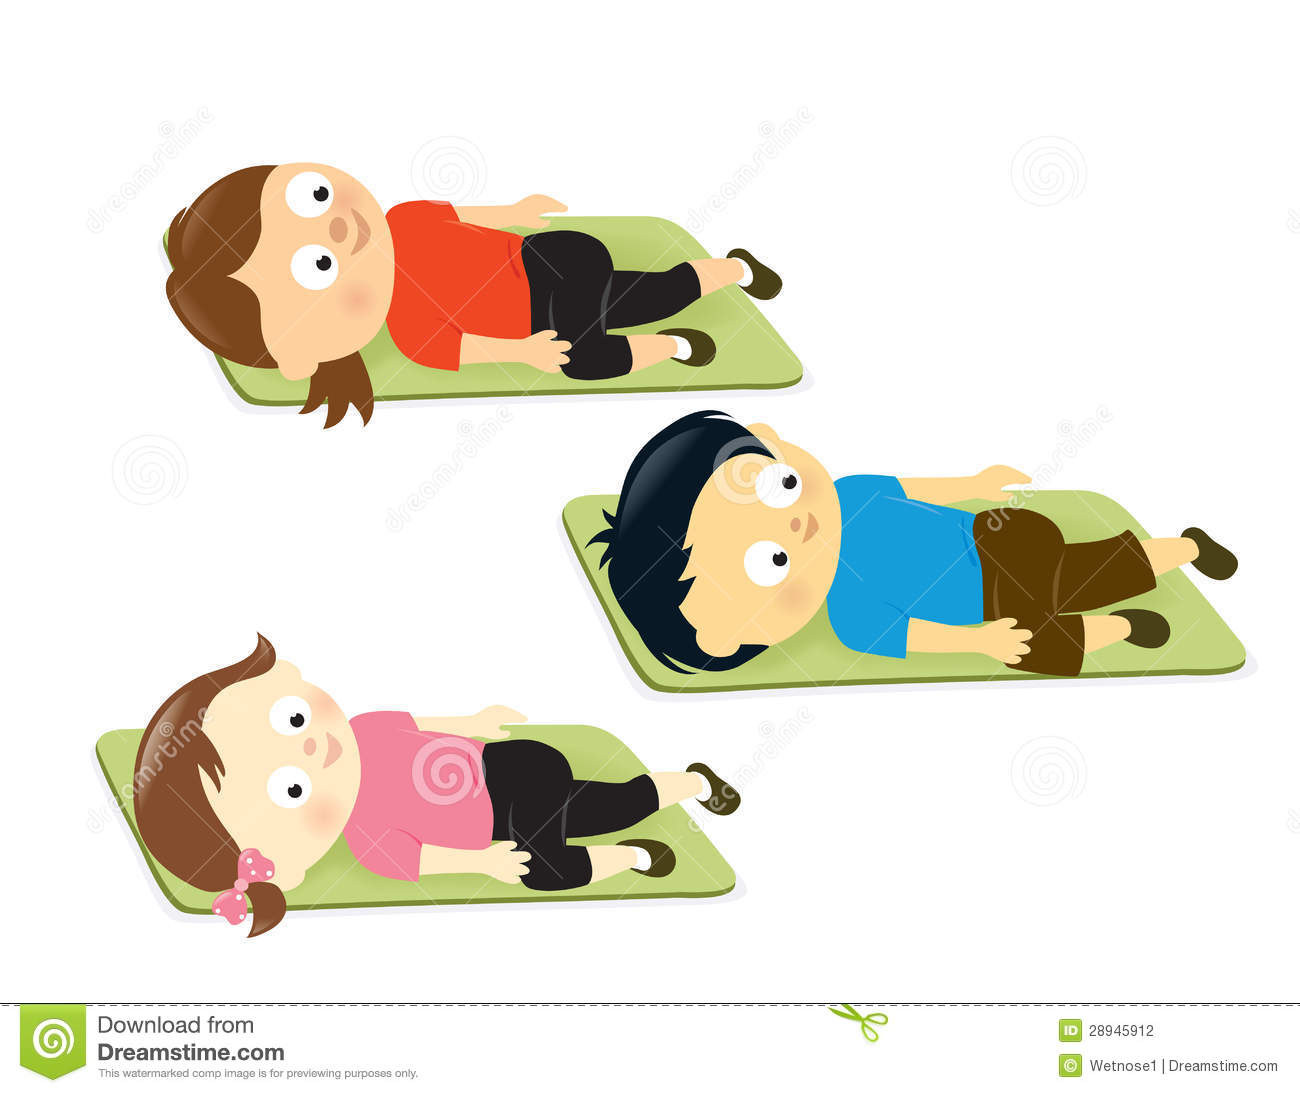 Kids Stretching On Mats Stock Vector. Illustration Of